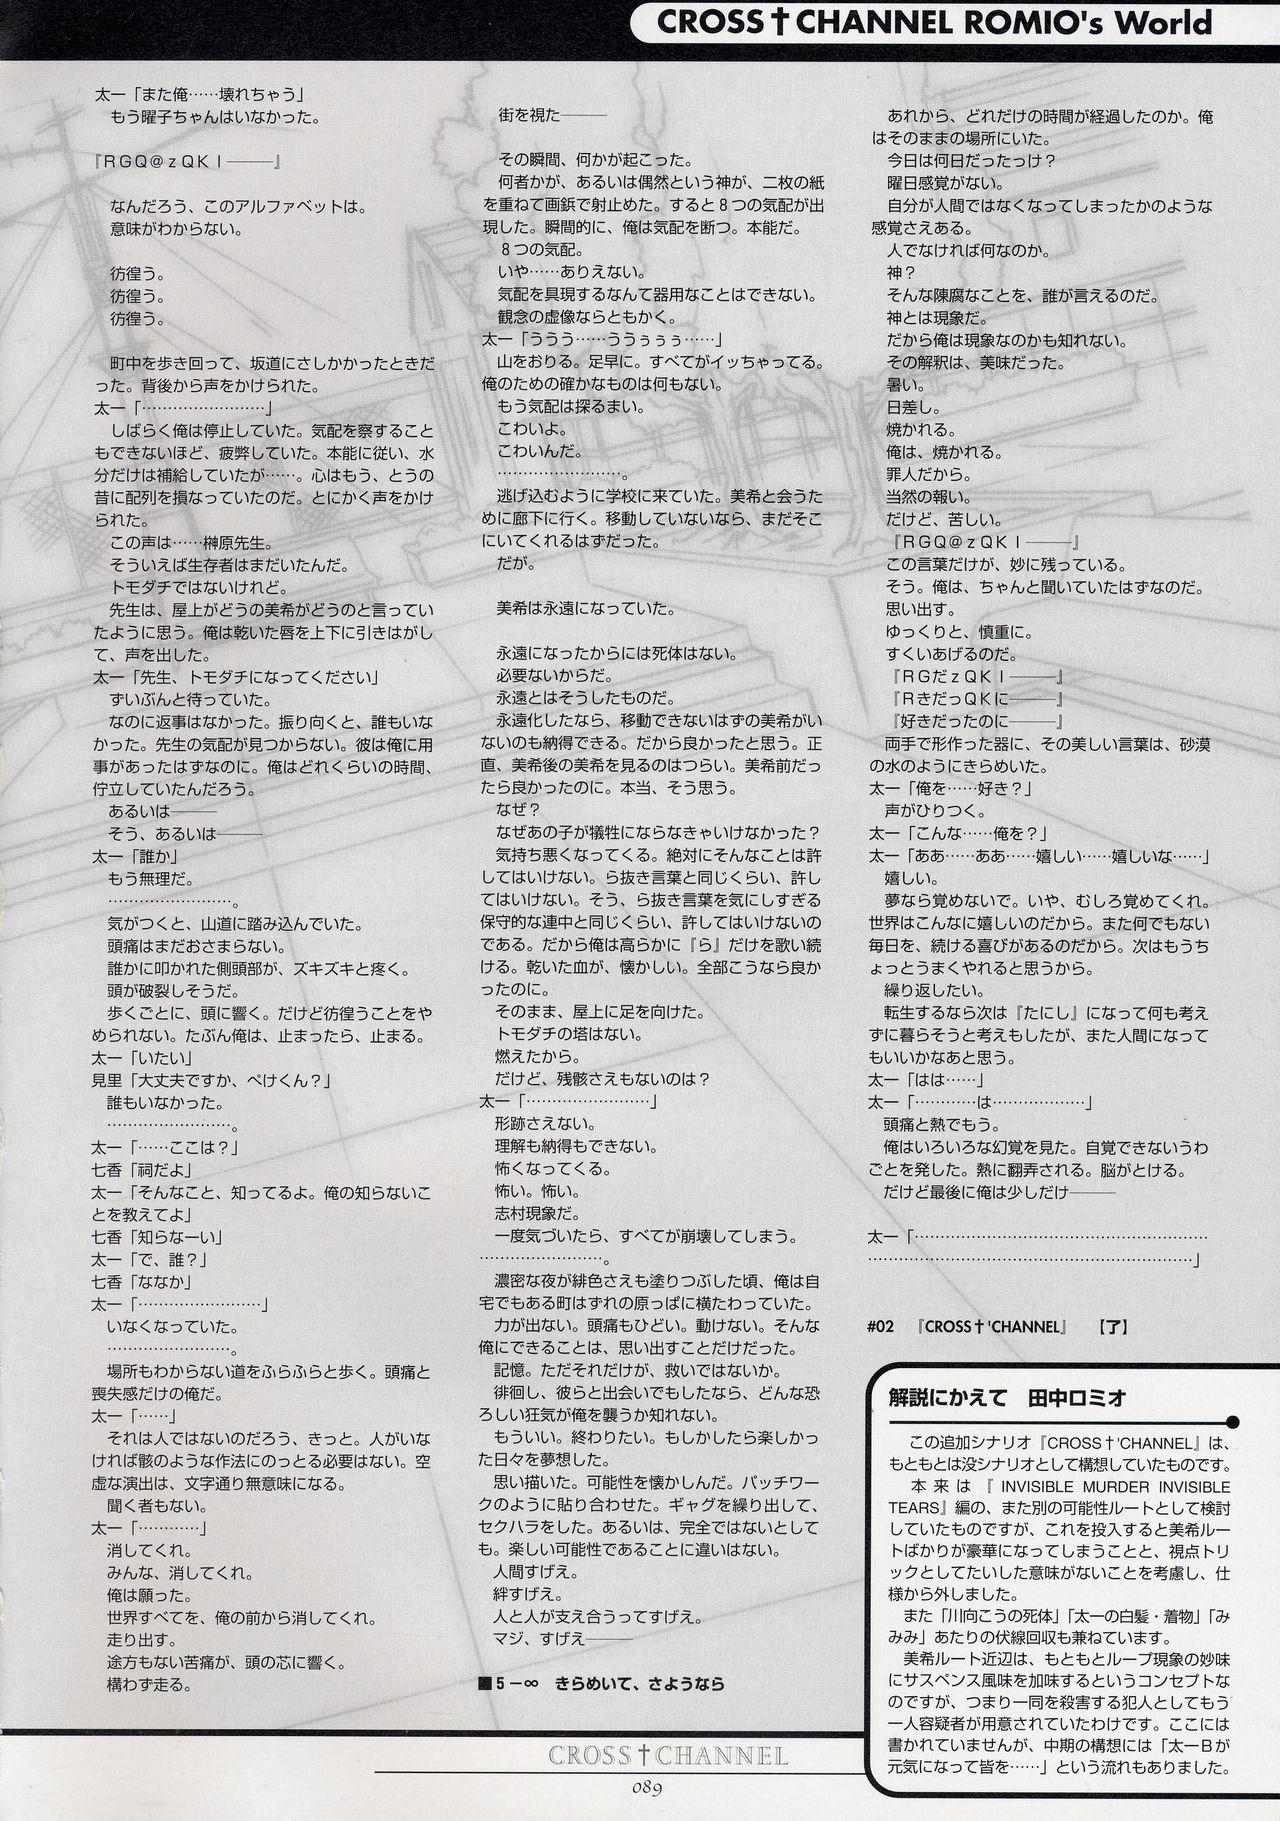 CROSS†CHANNEL Official Setting Materials 99